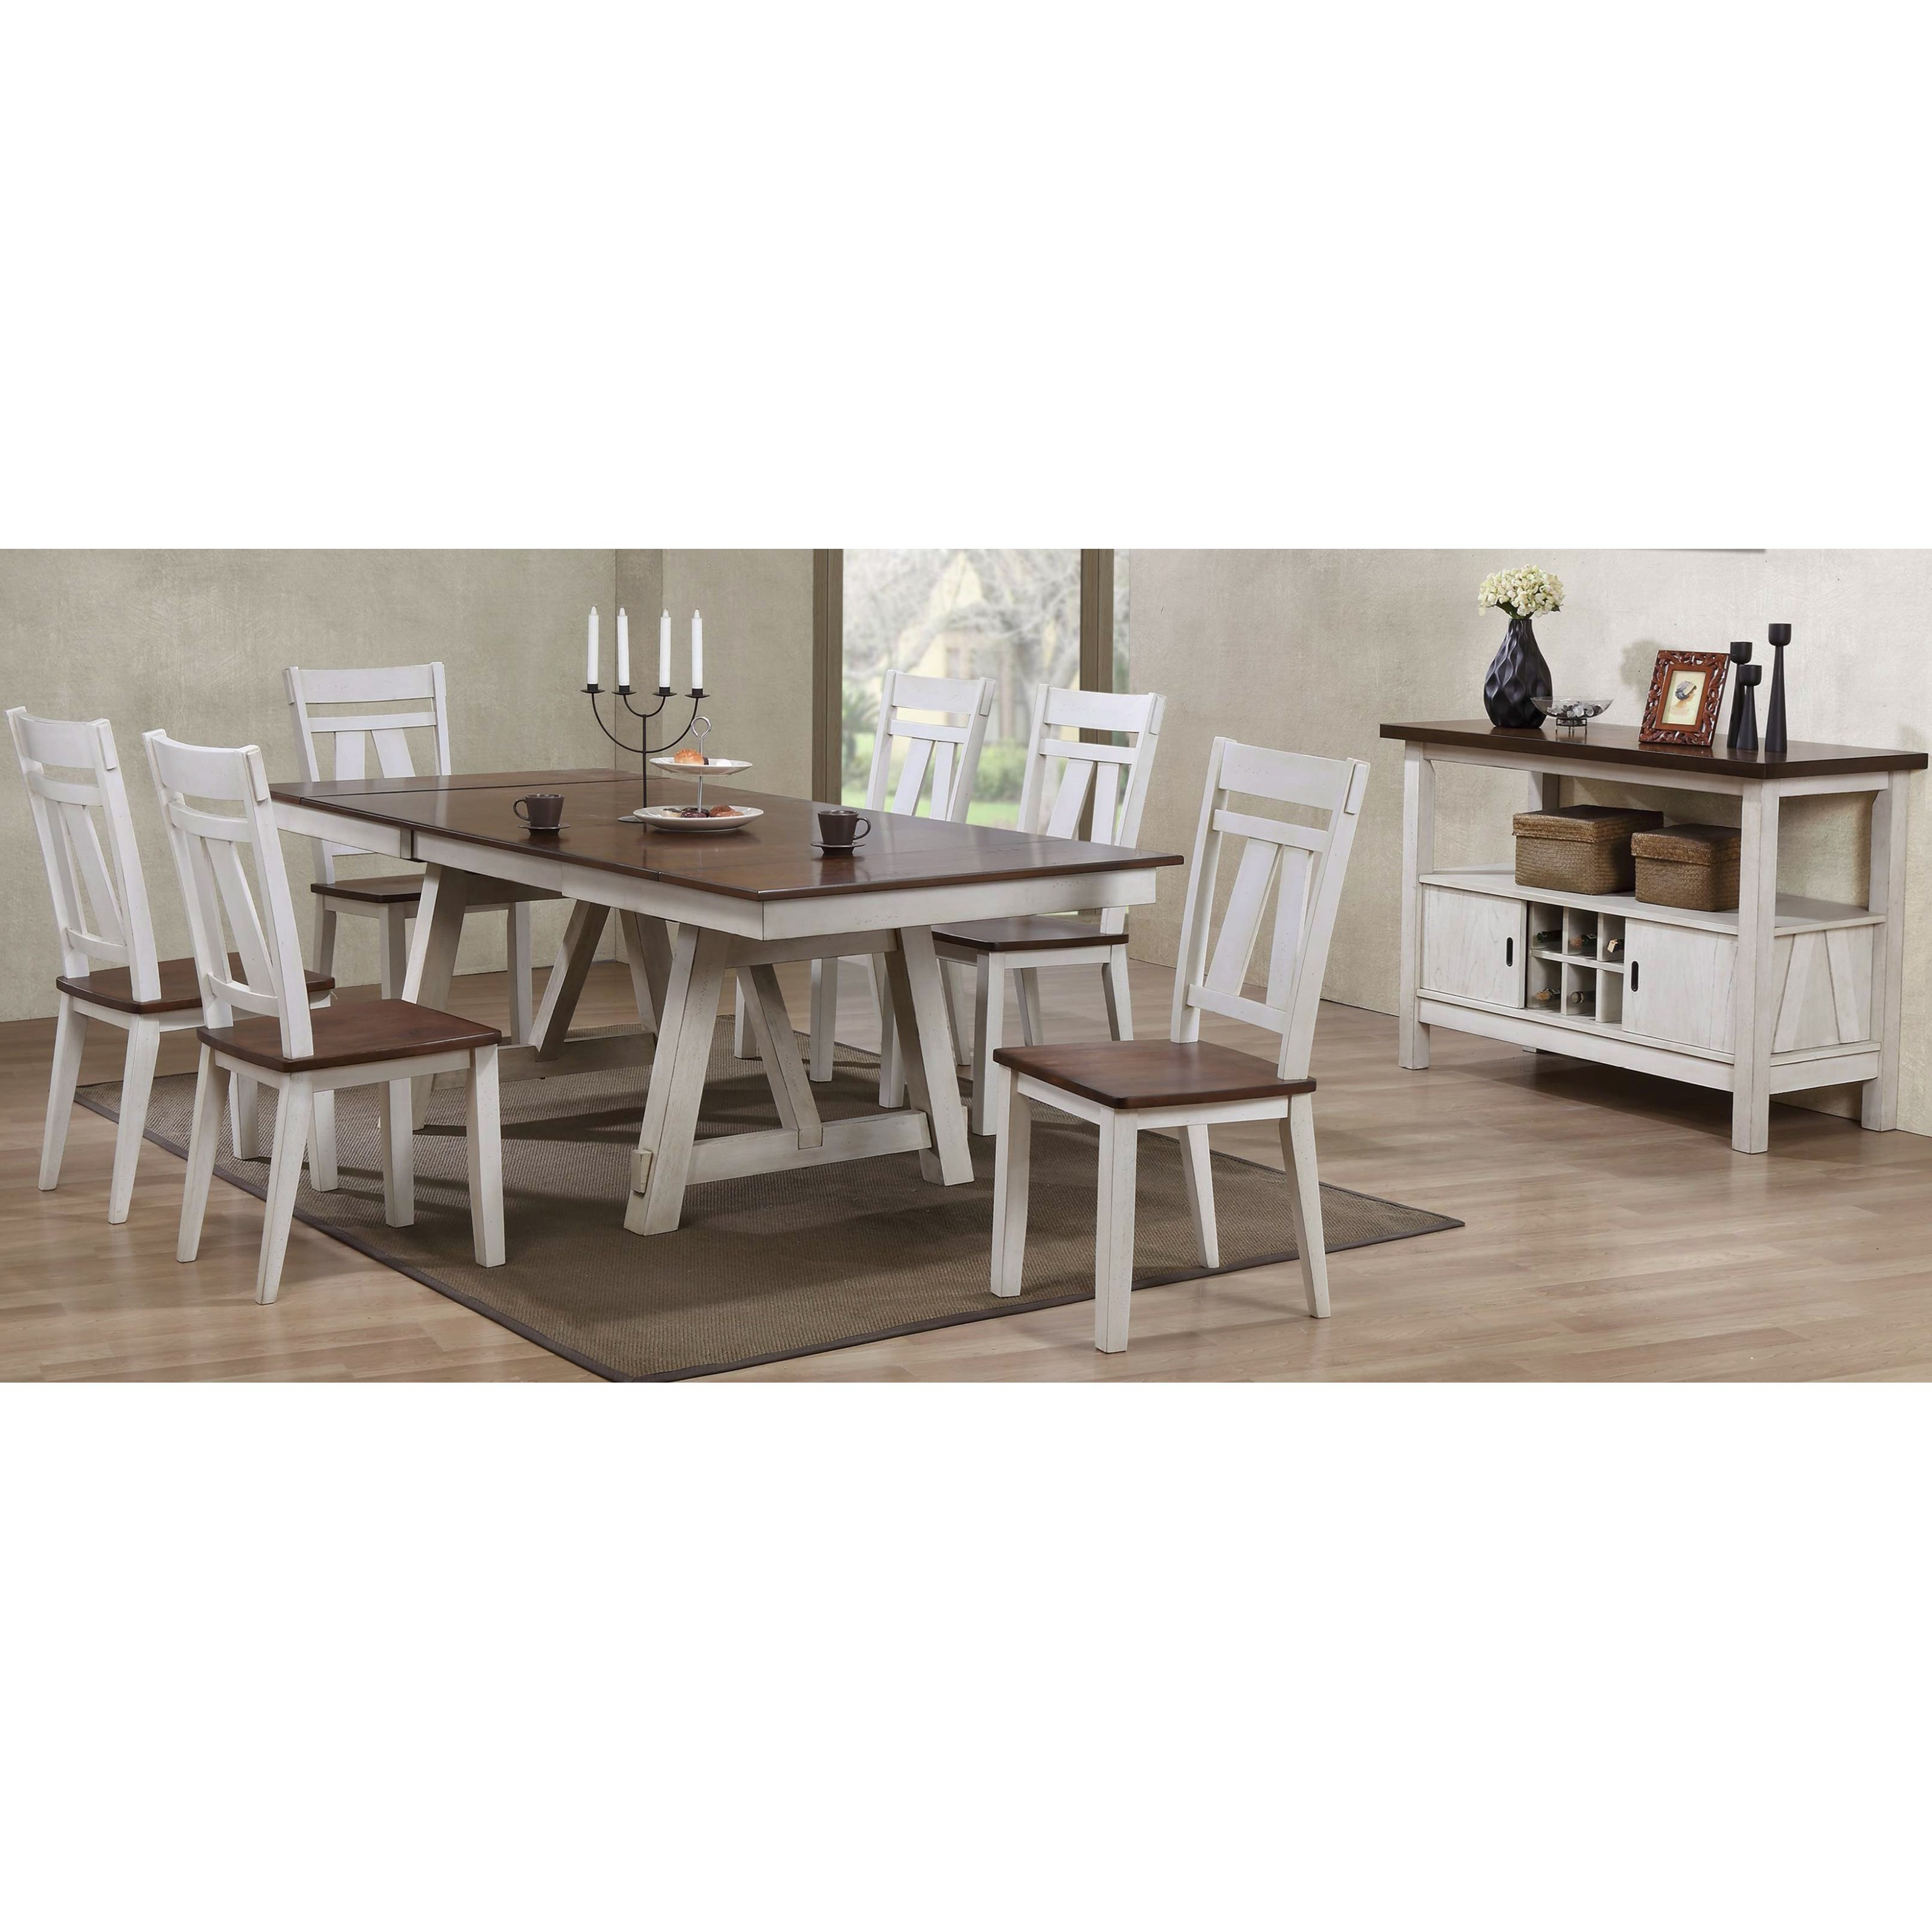 Anime Royal Dining Room: Bernards Winslow 7-Piece Two-Tone Refectory Table Set